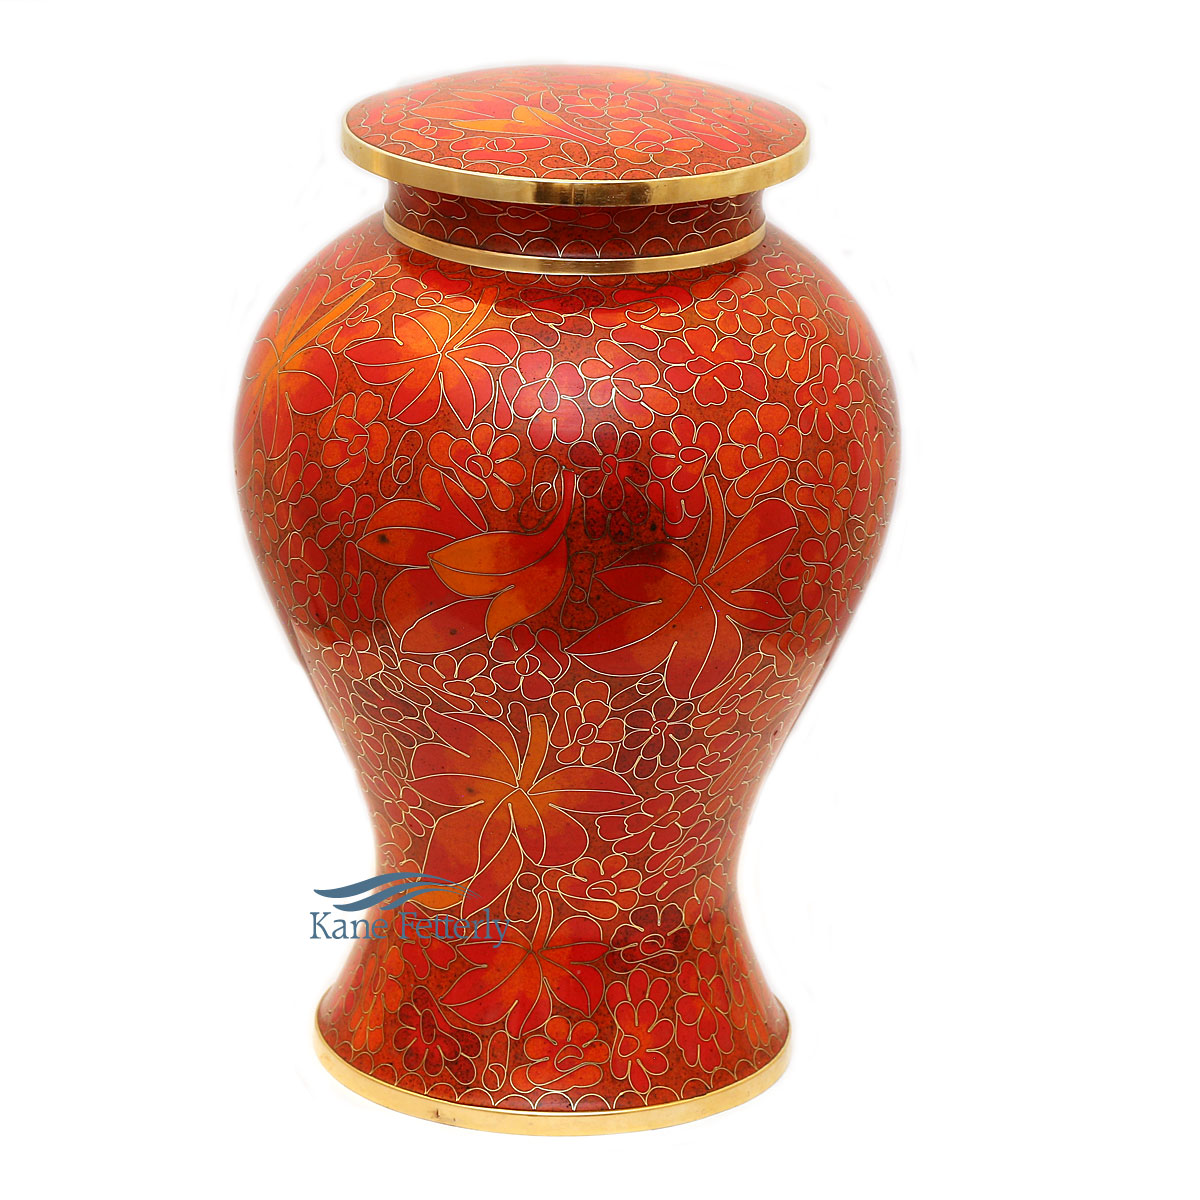 U8592 Cloisonn� urn with leaves